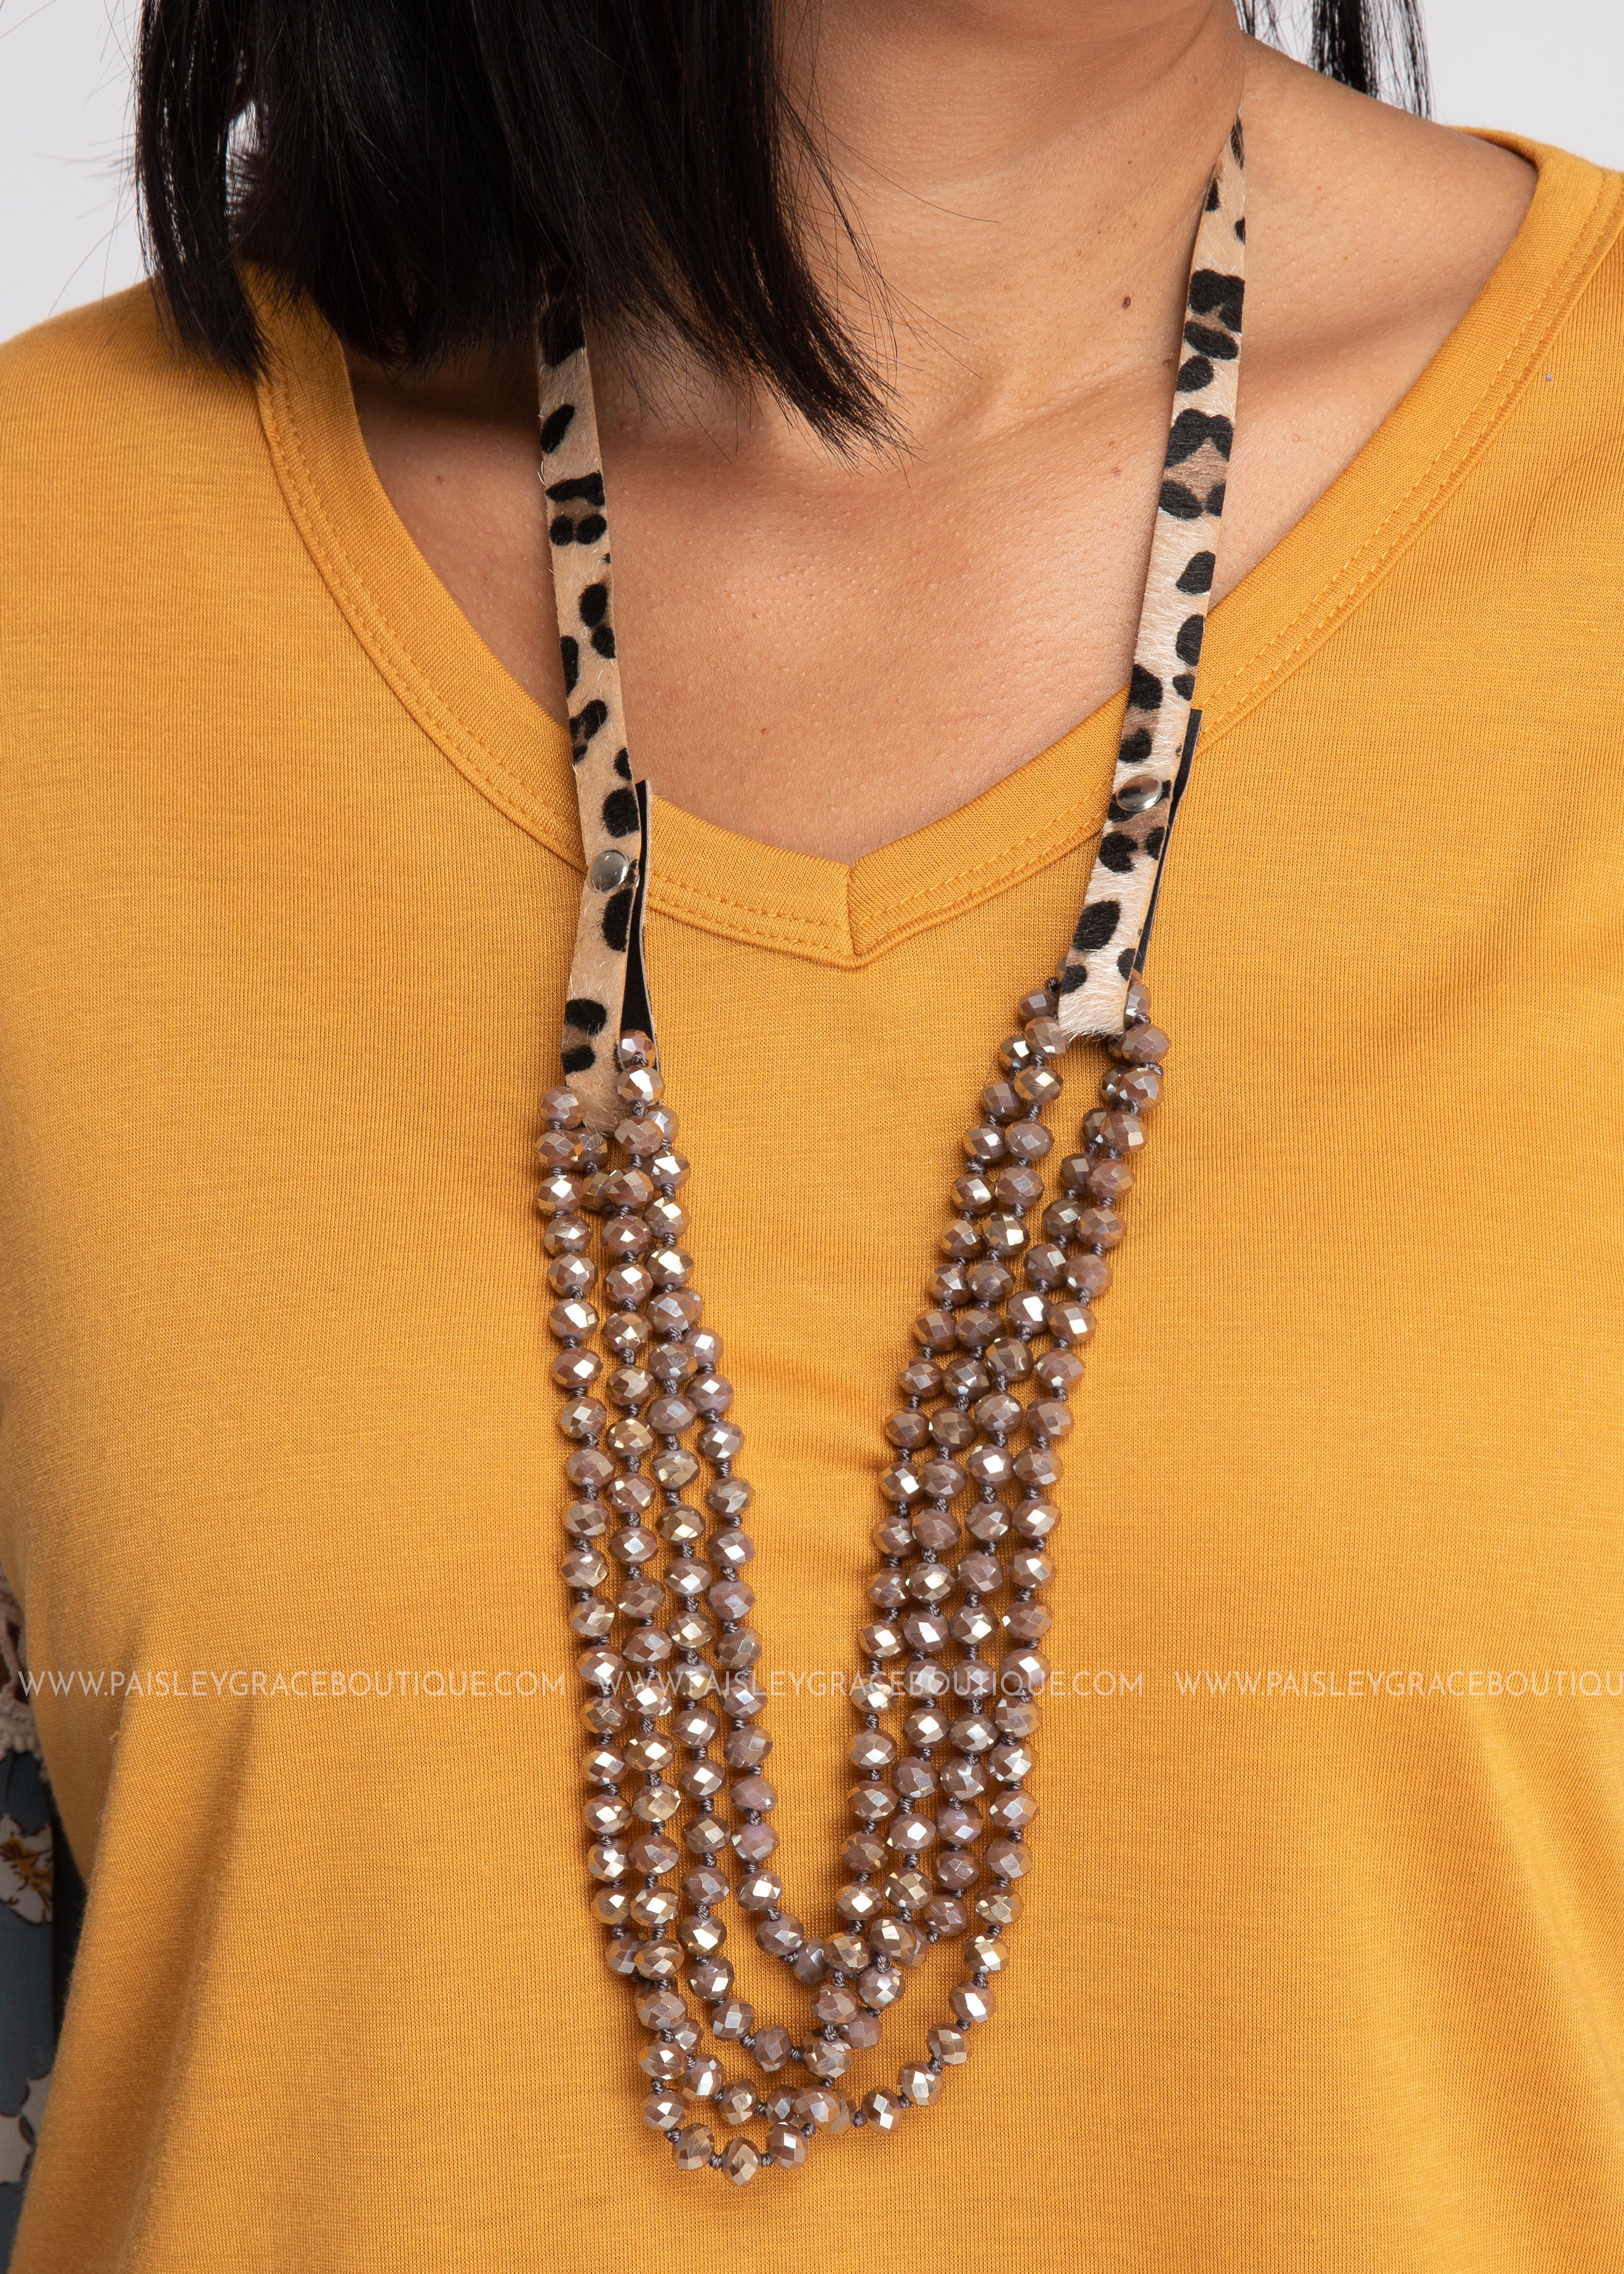 Essential Bead Necklace Extender-Leopard